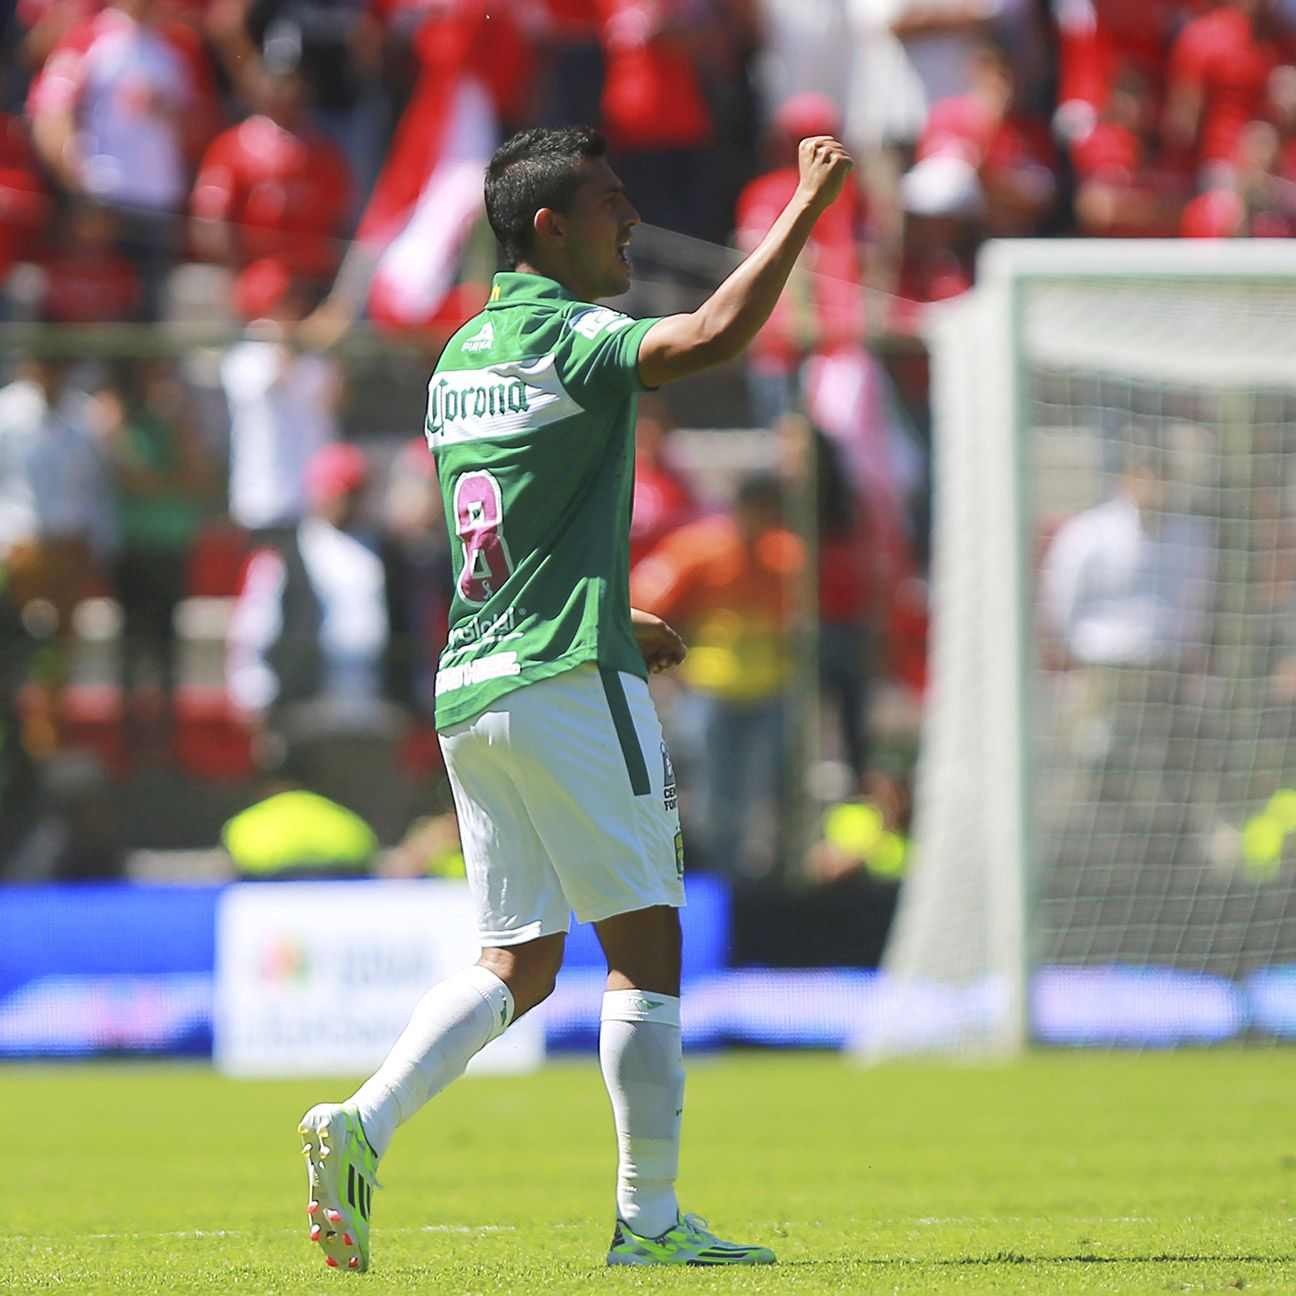 Elias Hernandez and Leon are now just one point out of a liguilla spot with three matches to play in Liga MX.